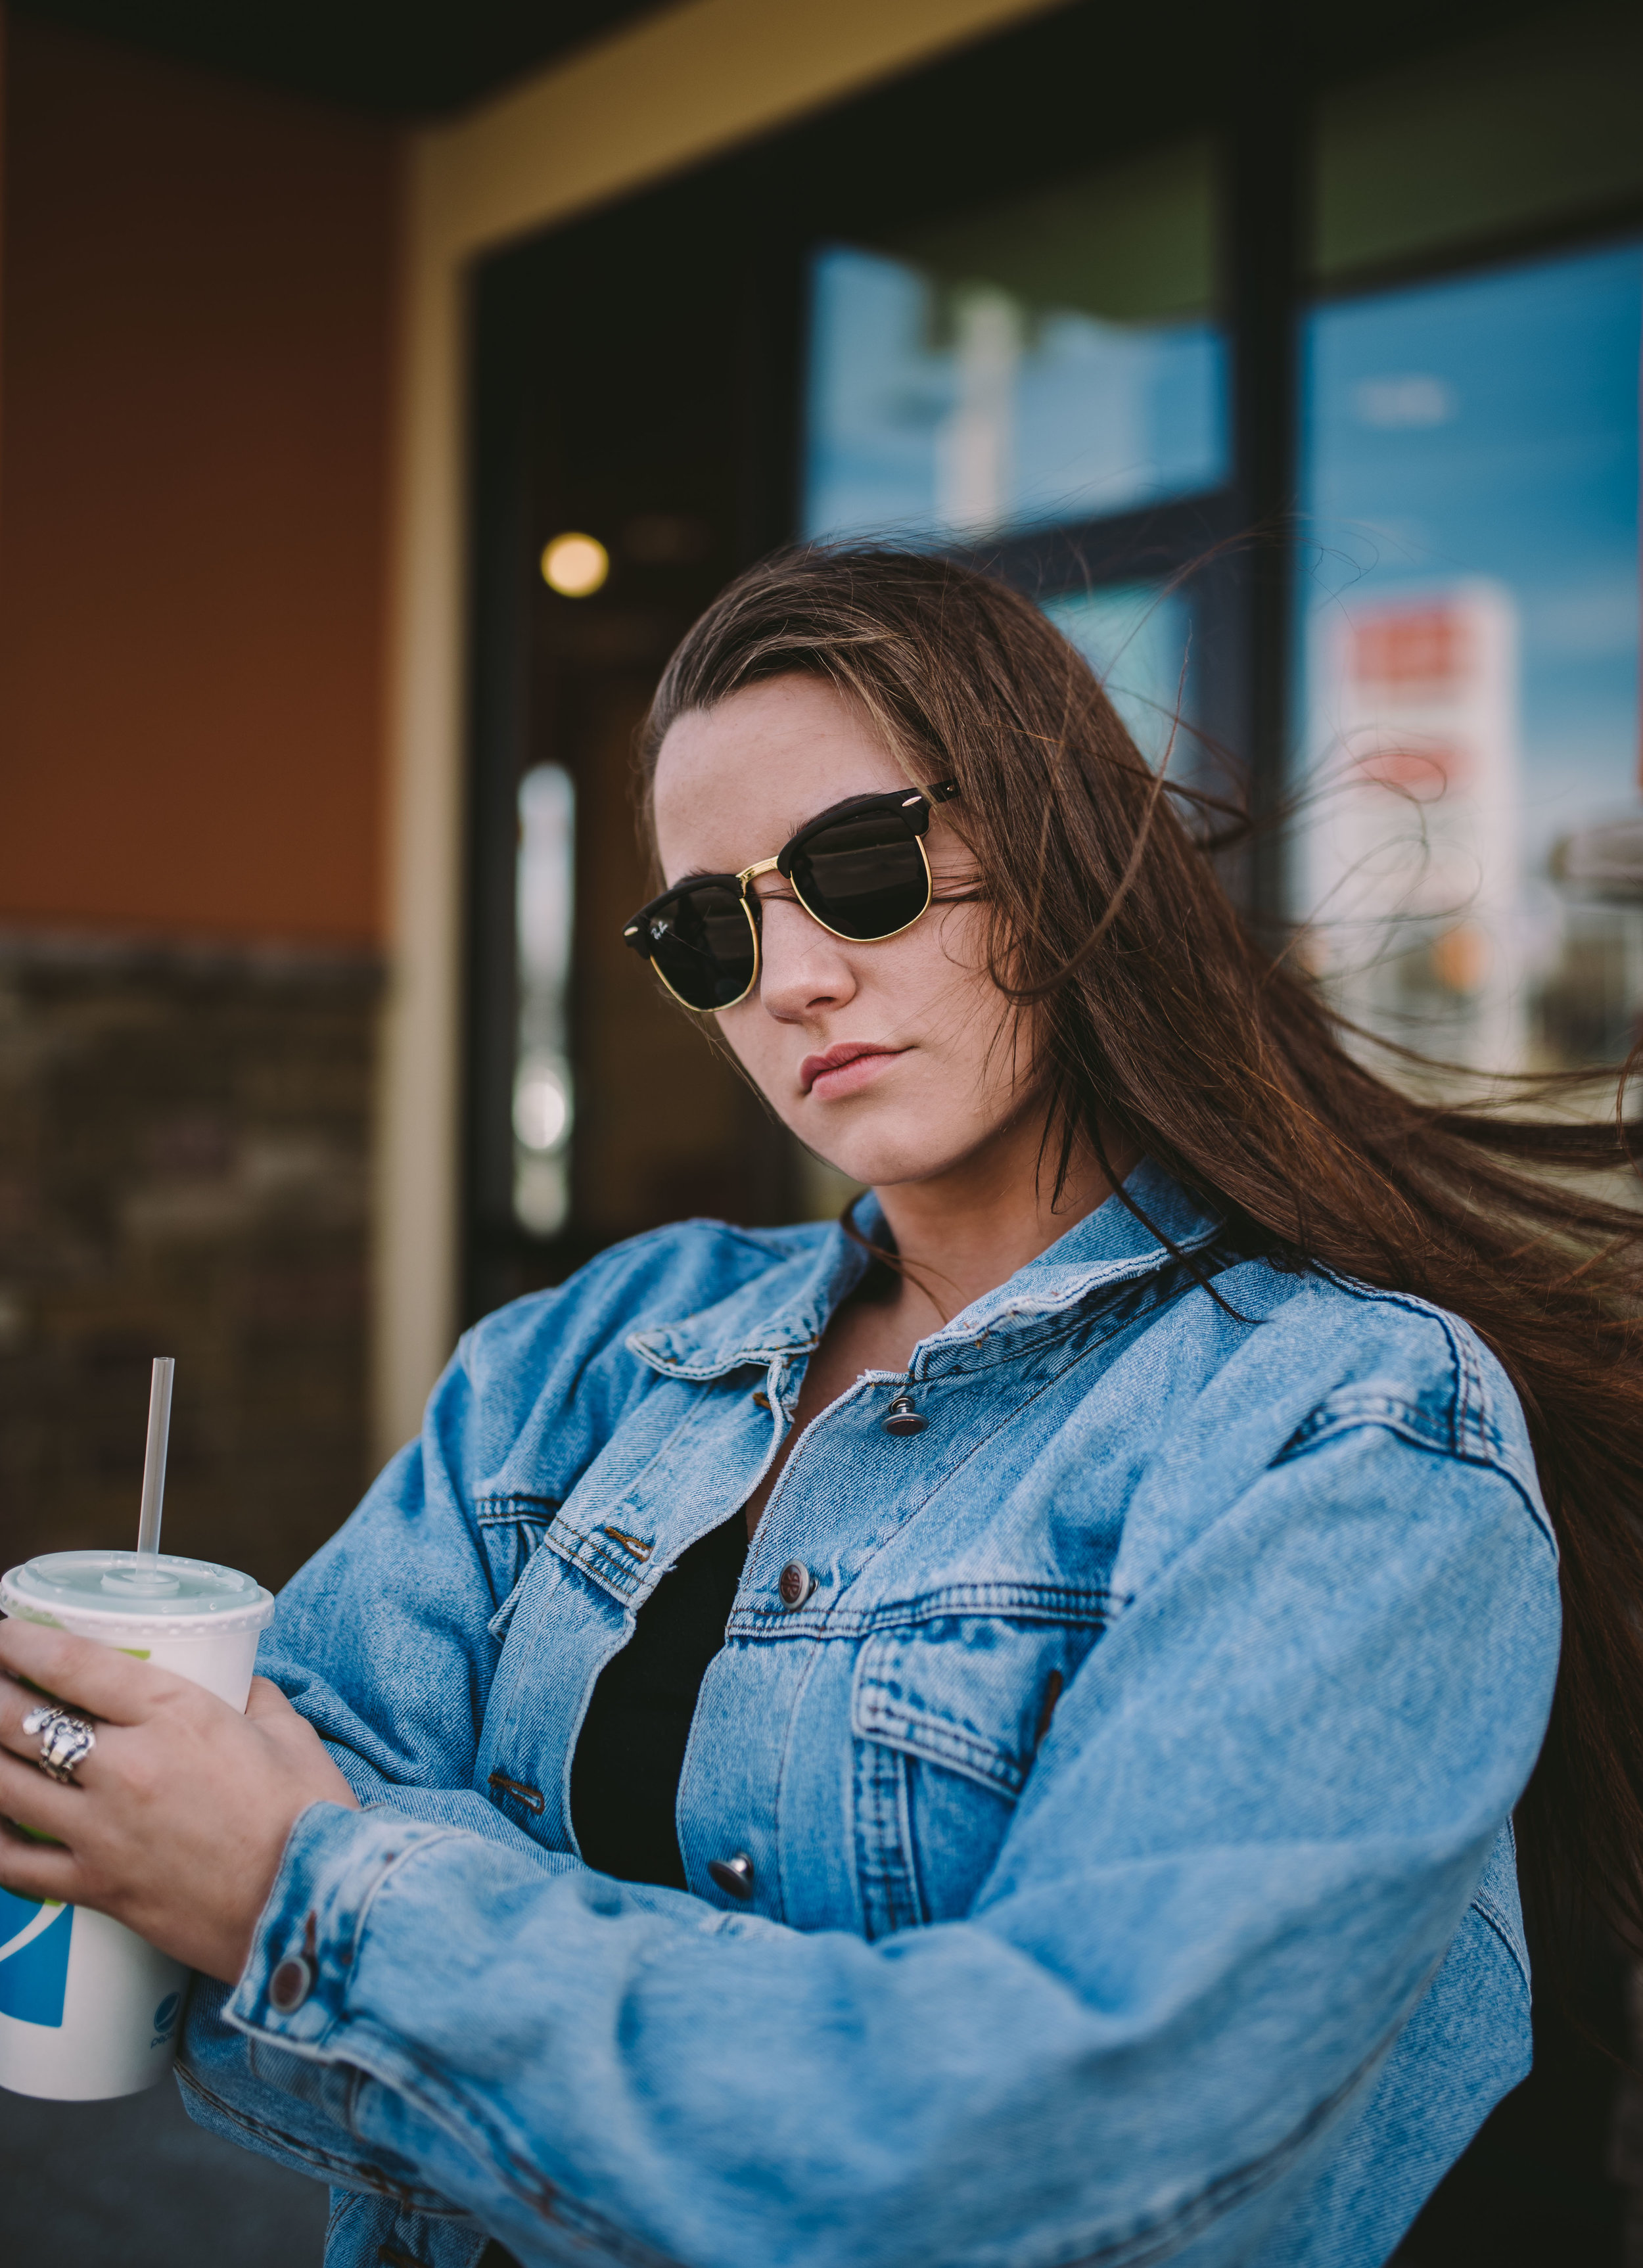 FastFoodPhotoChallenge_KaitlinRomack_March2018_Senior Photography In Tempe_ArizonaPortraitPhotographer_SamanthaRosePhotography_final_014.JPG